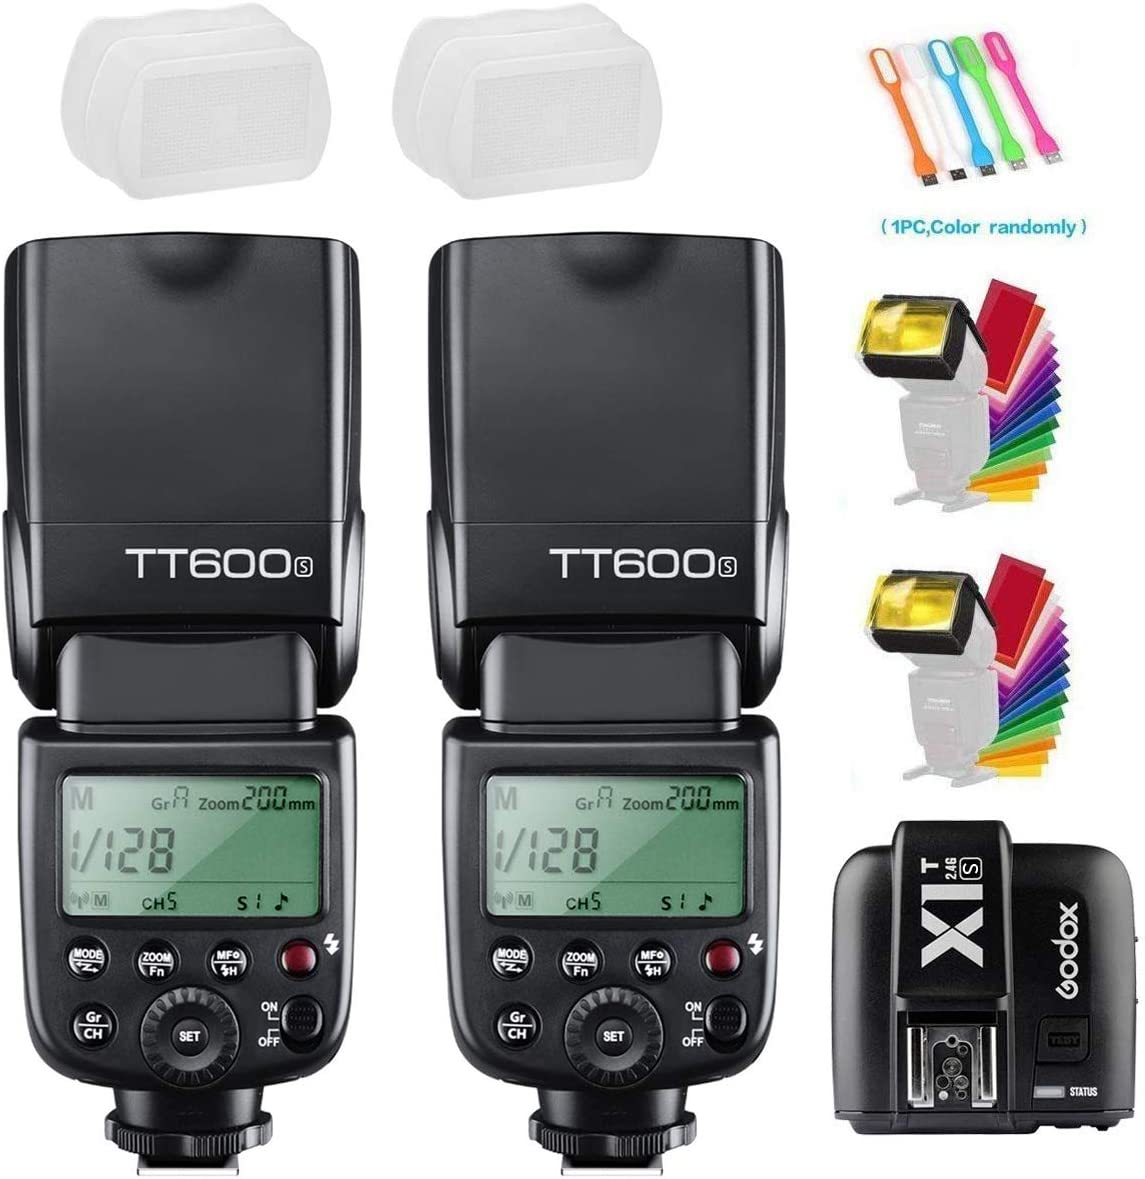 Godox TT600S 2PCS Camera Flash Speedlite GN60 High-Speed Sync 1/8000s 2.4G Wireless X-System Master Slave Light with X1T-S Trigger Transmitter Compatible for Sony Cameras